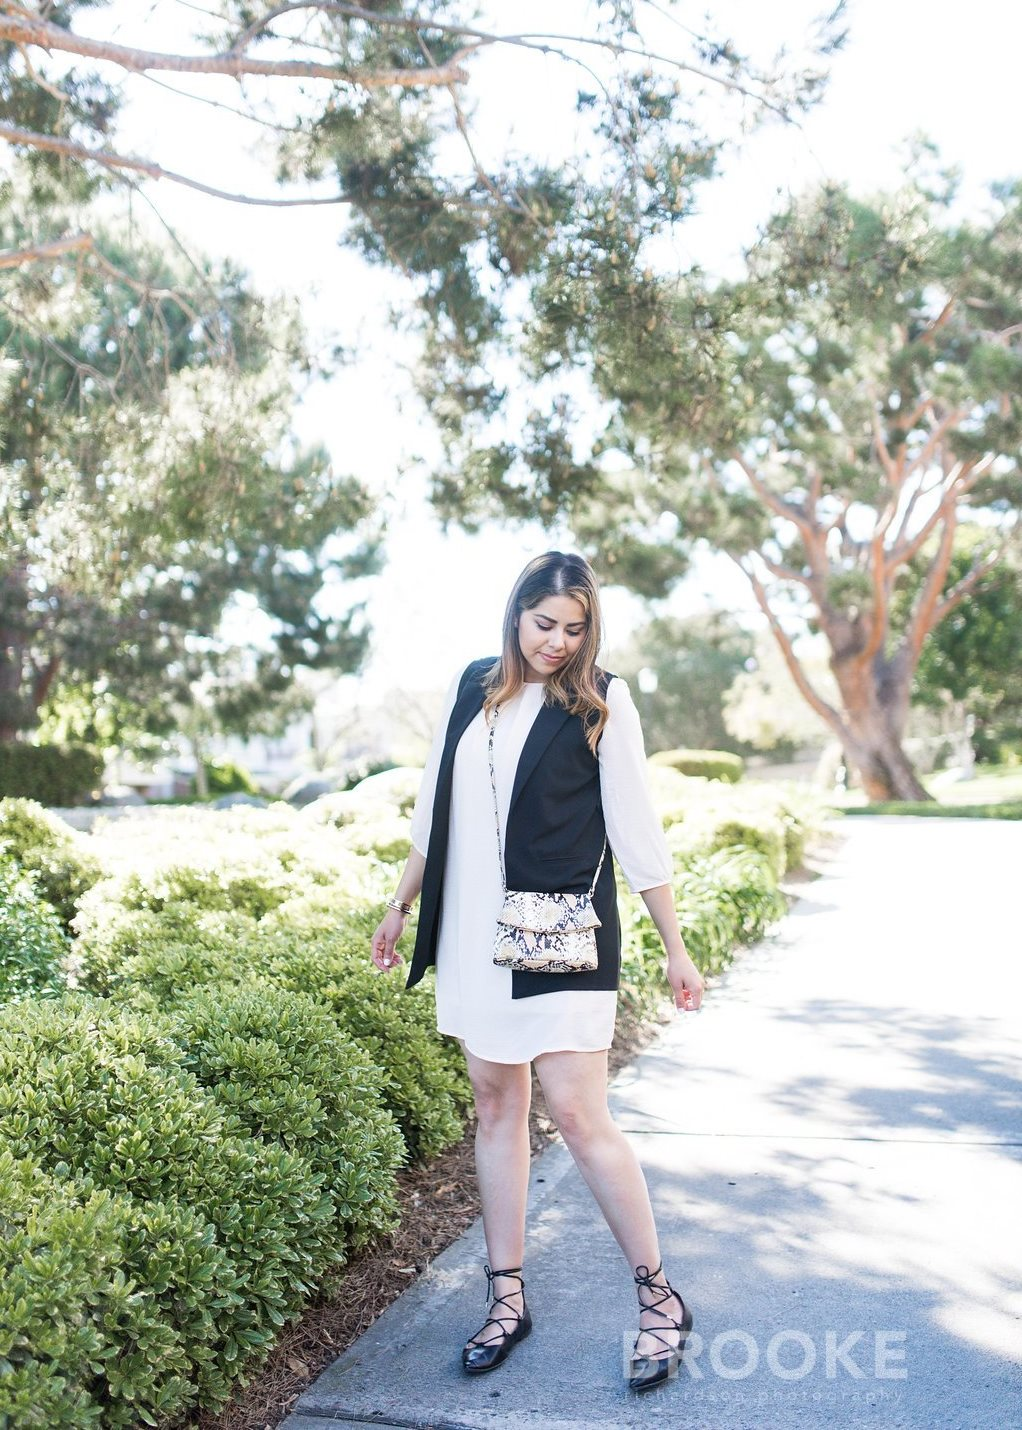 White dress and black vest outfit, snakeprint crossbody, latina fashion blogger, latina style blogger